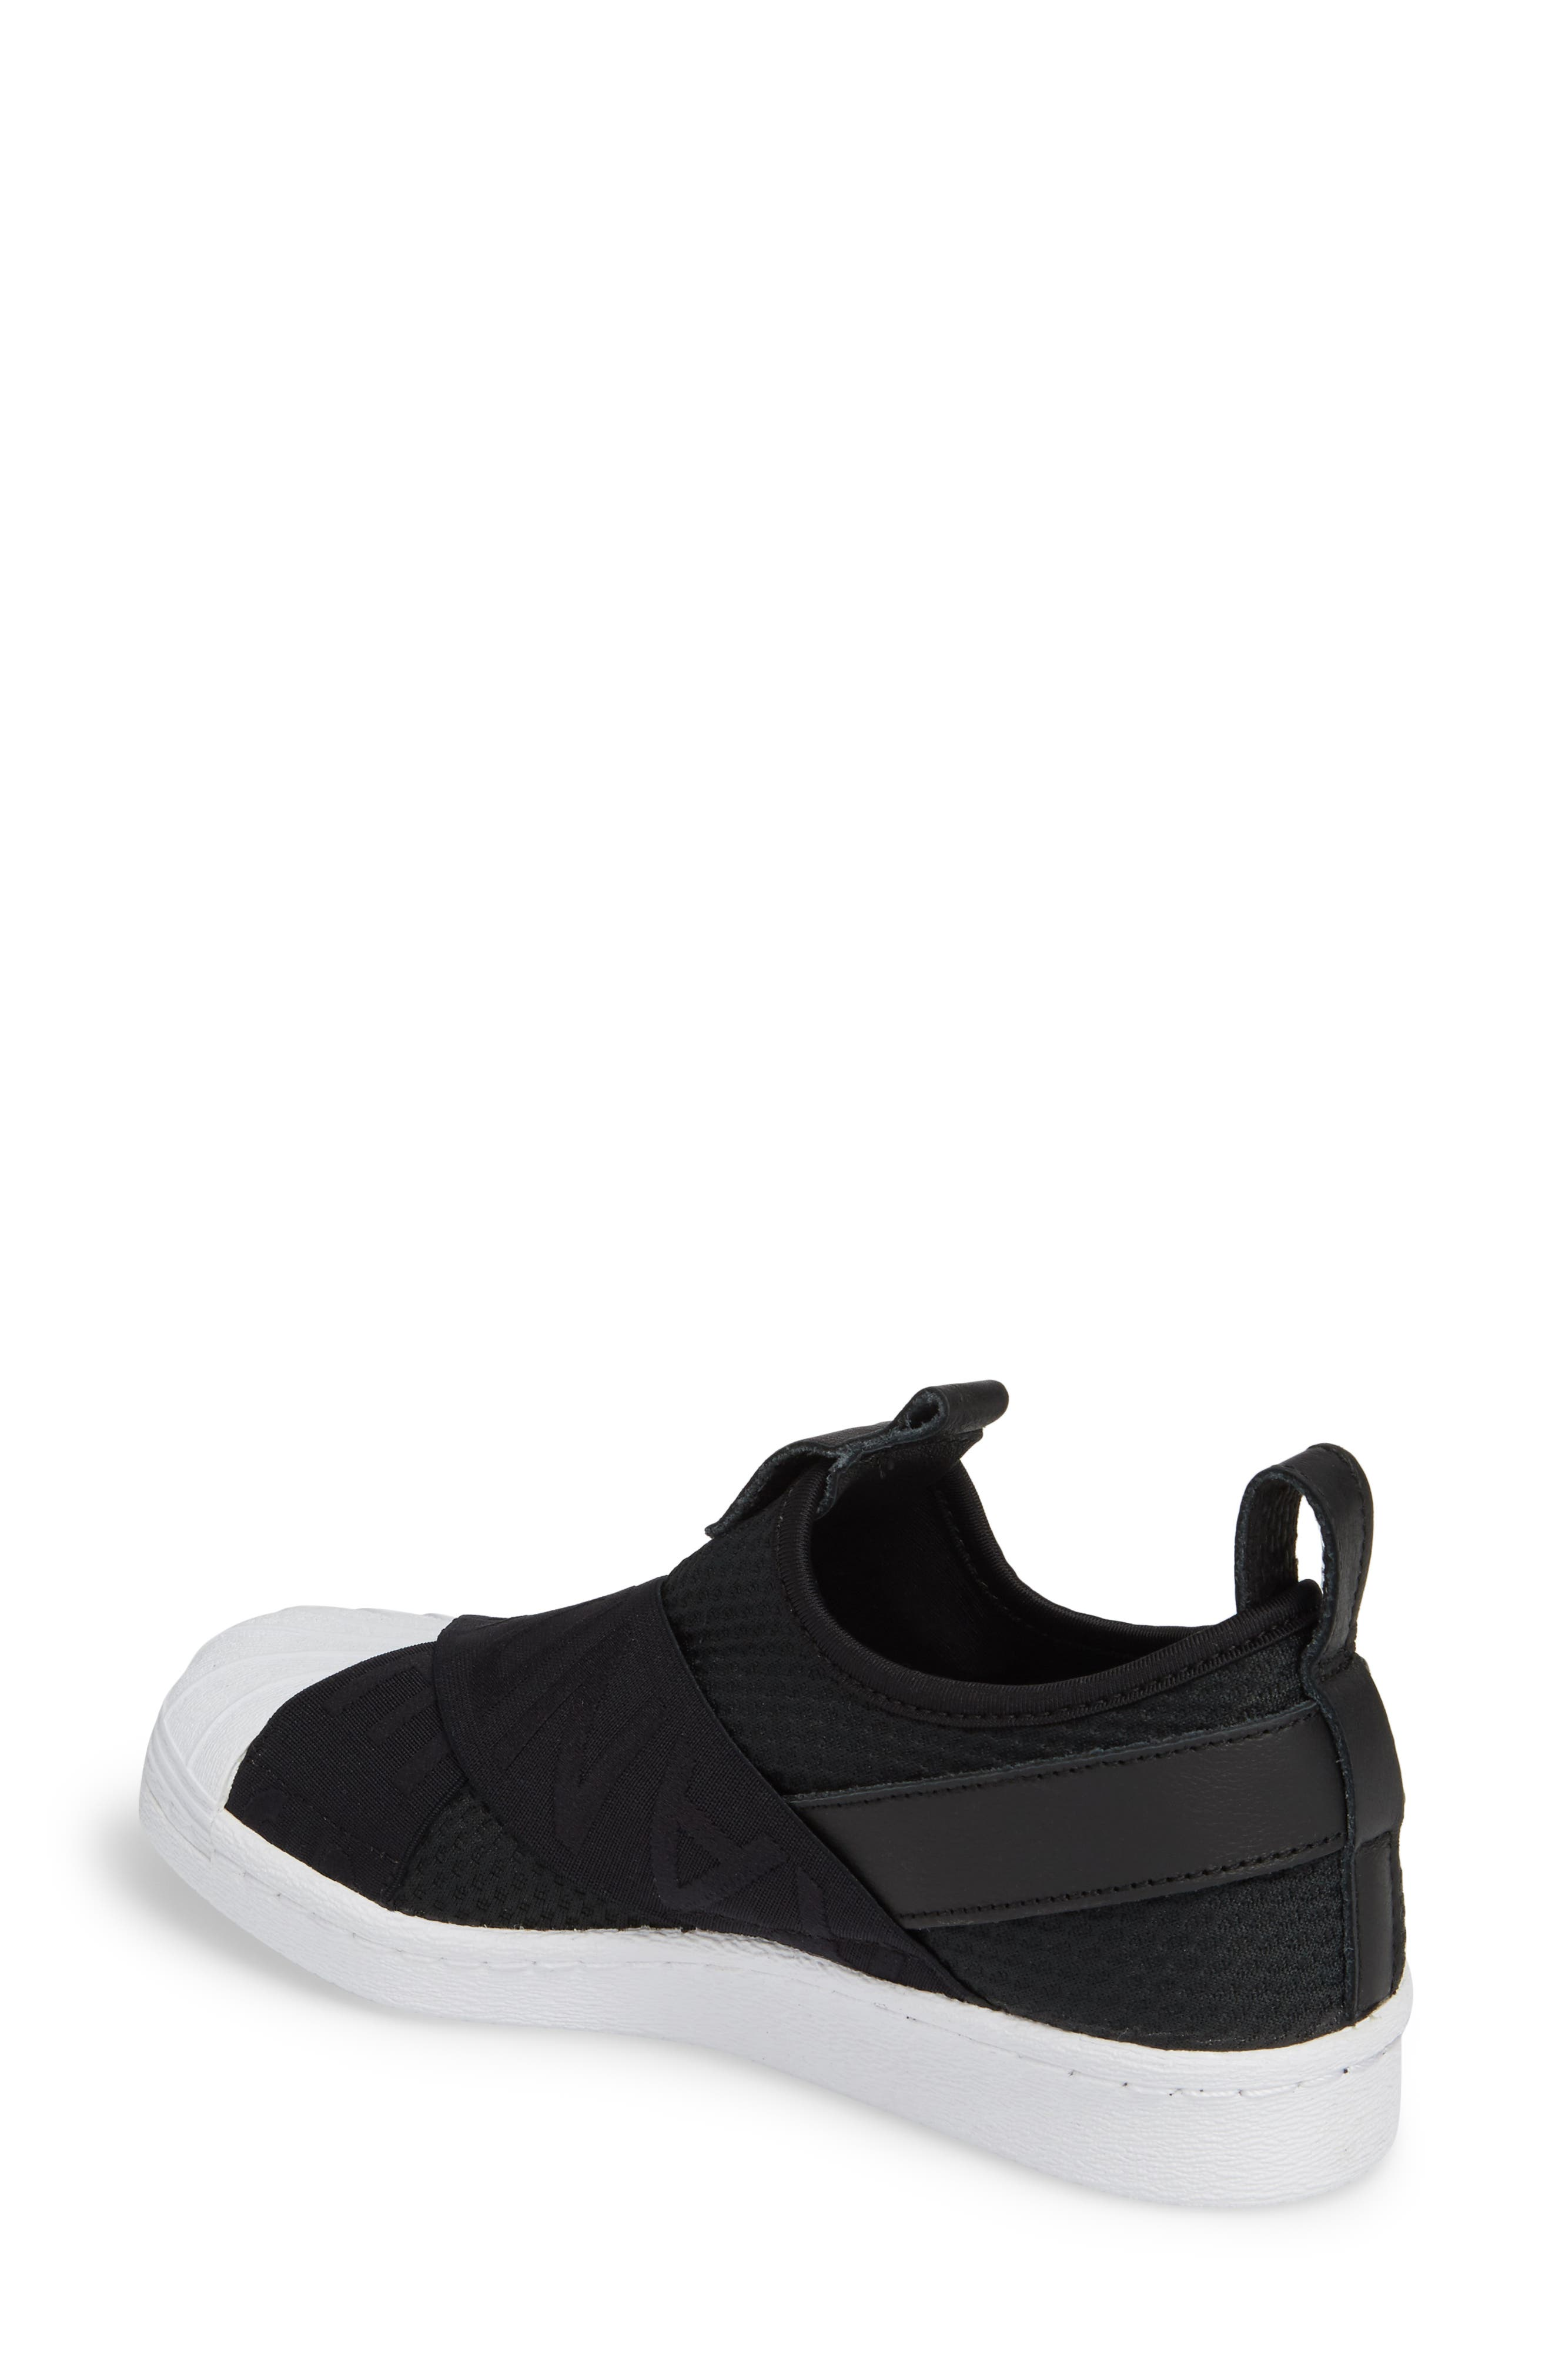 Superstar Slip-On Sneaker,                             Alternate thumbnail 2, color,                             003